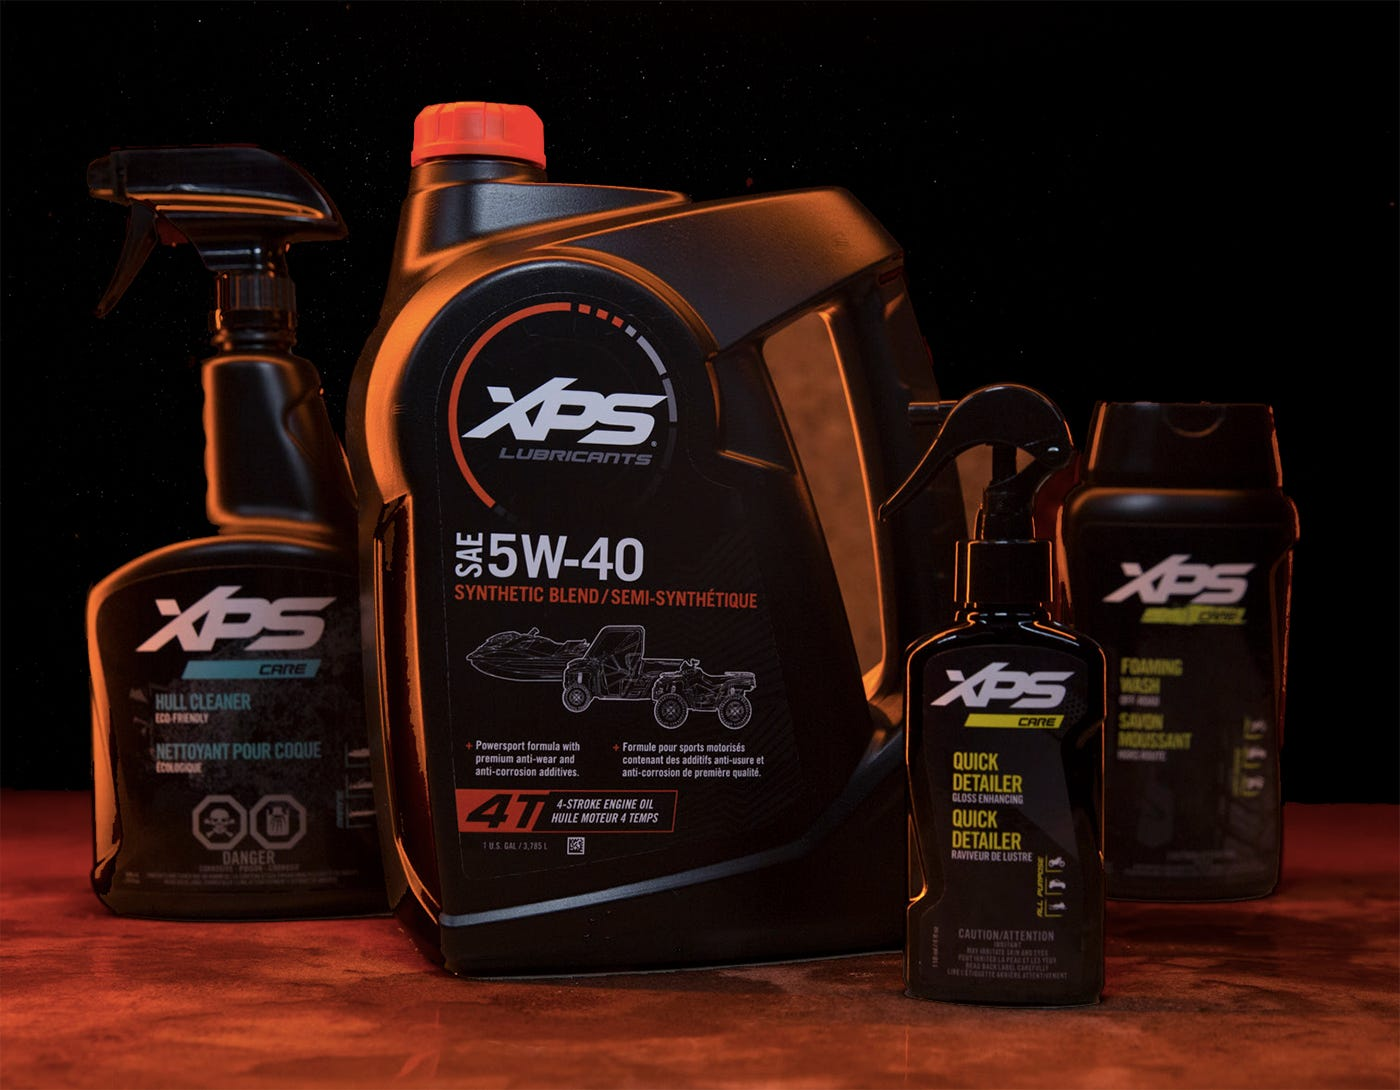 XPS Lubricants and Care products line-up